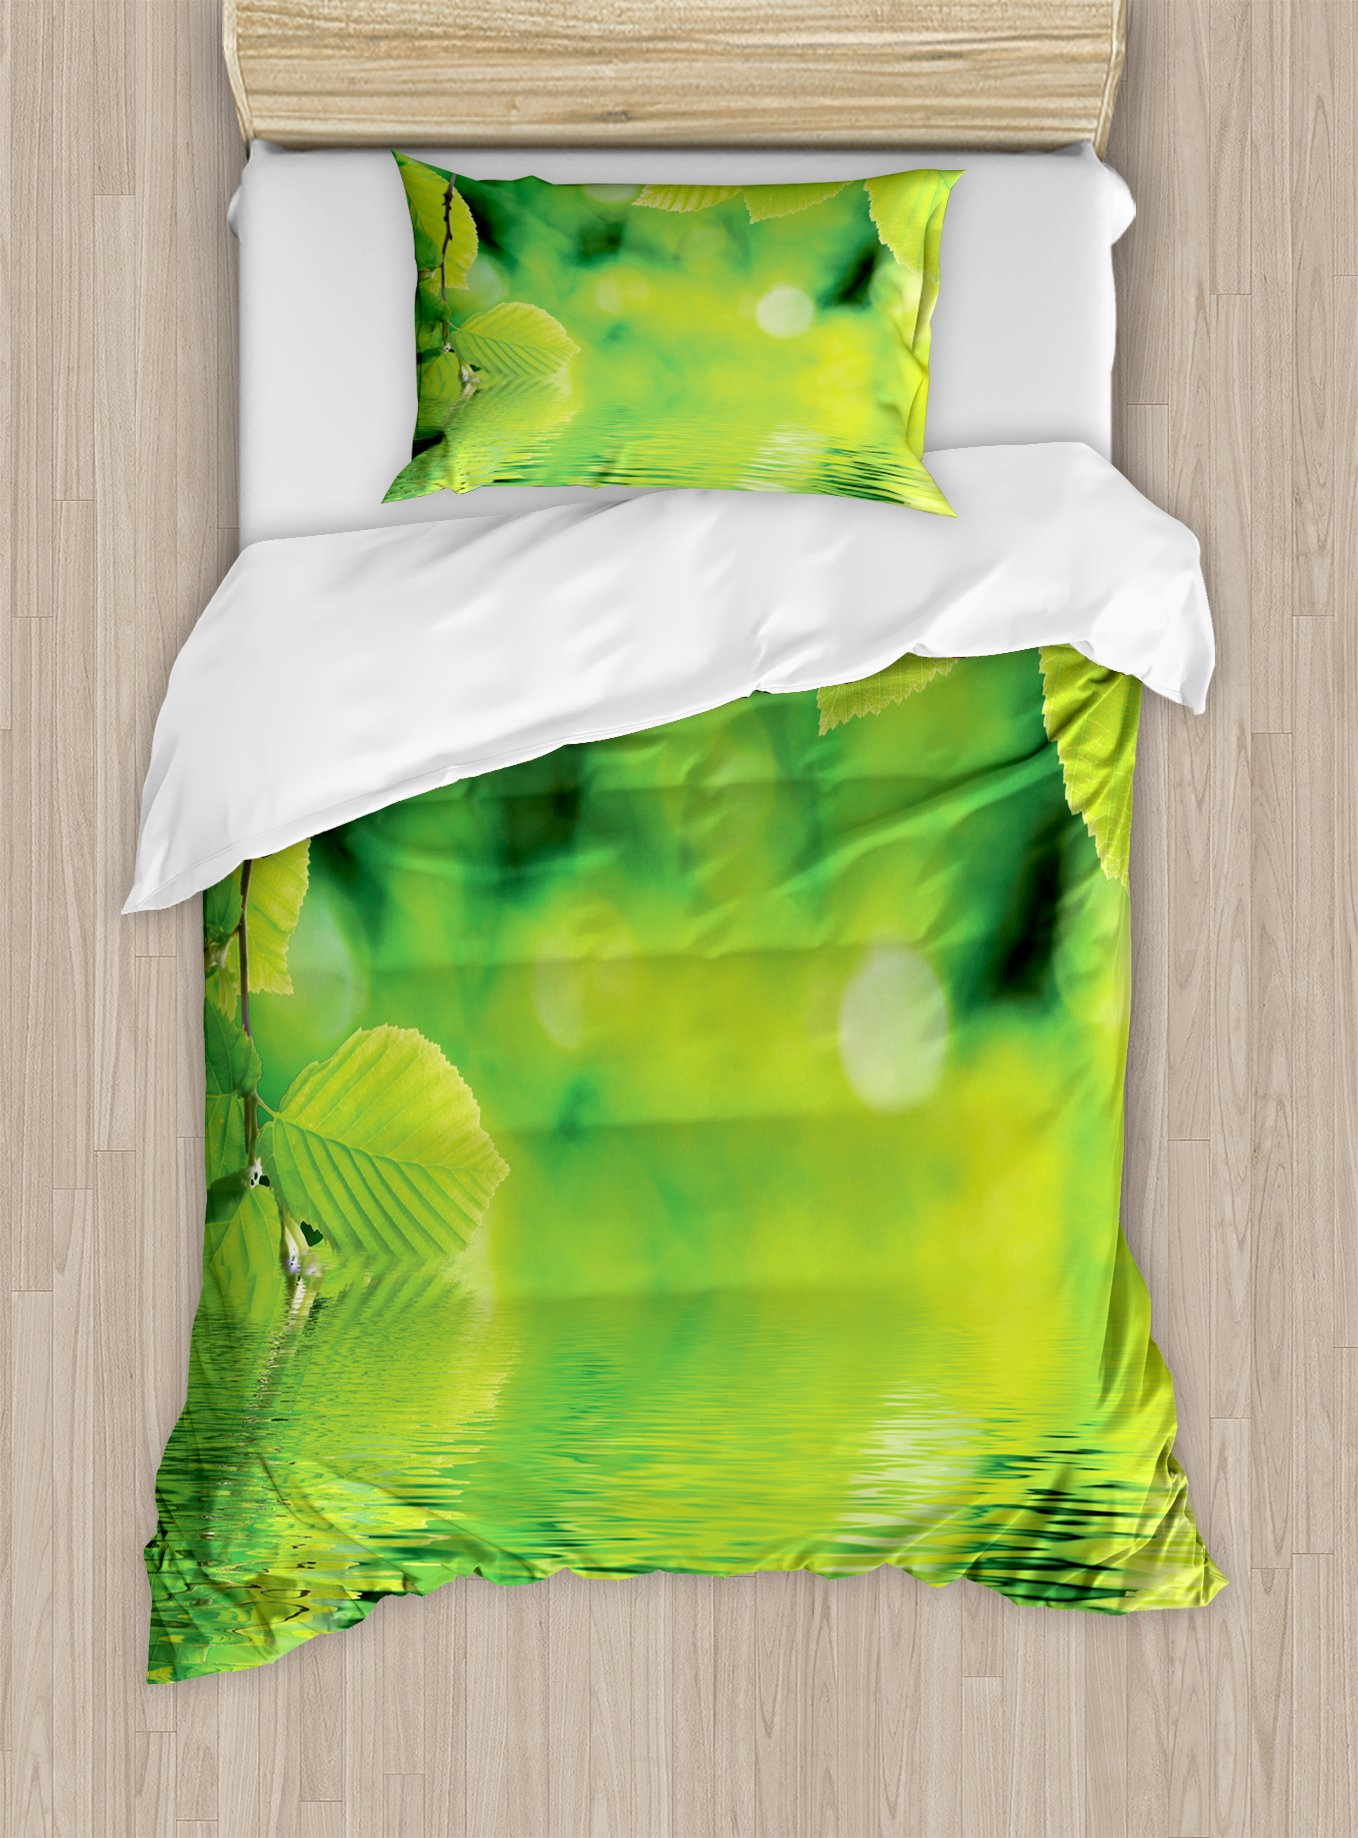 Ambesonne Leaves Duvet Cover Set Twin Size, Leaves in Water Spa Open Your Chakra with Nature Meditation Ecological Monochrome Photo, Decorative 2 Piece Bedding Set with 1 Pillow Sham, Green